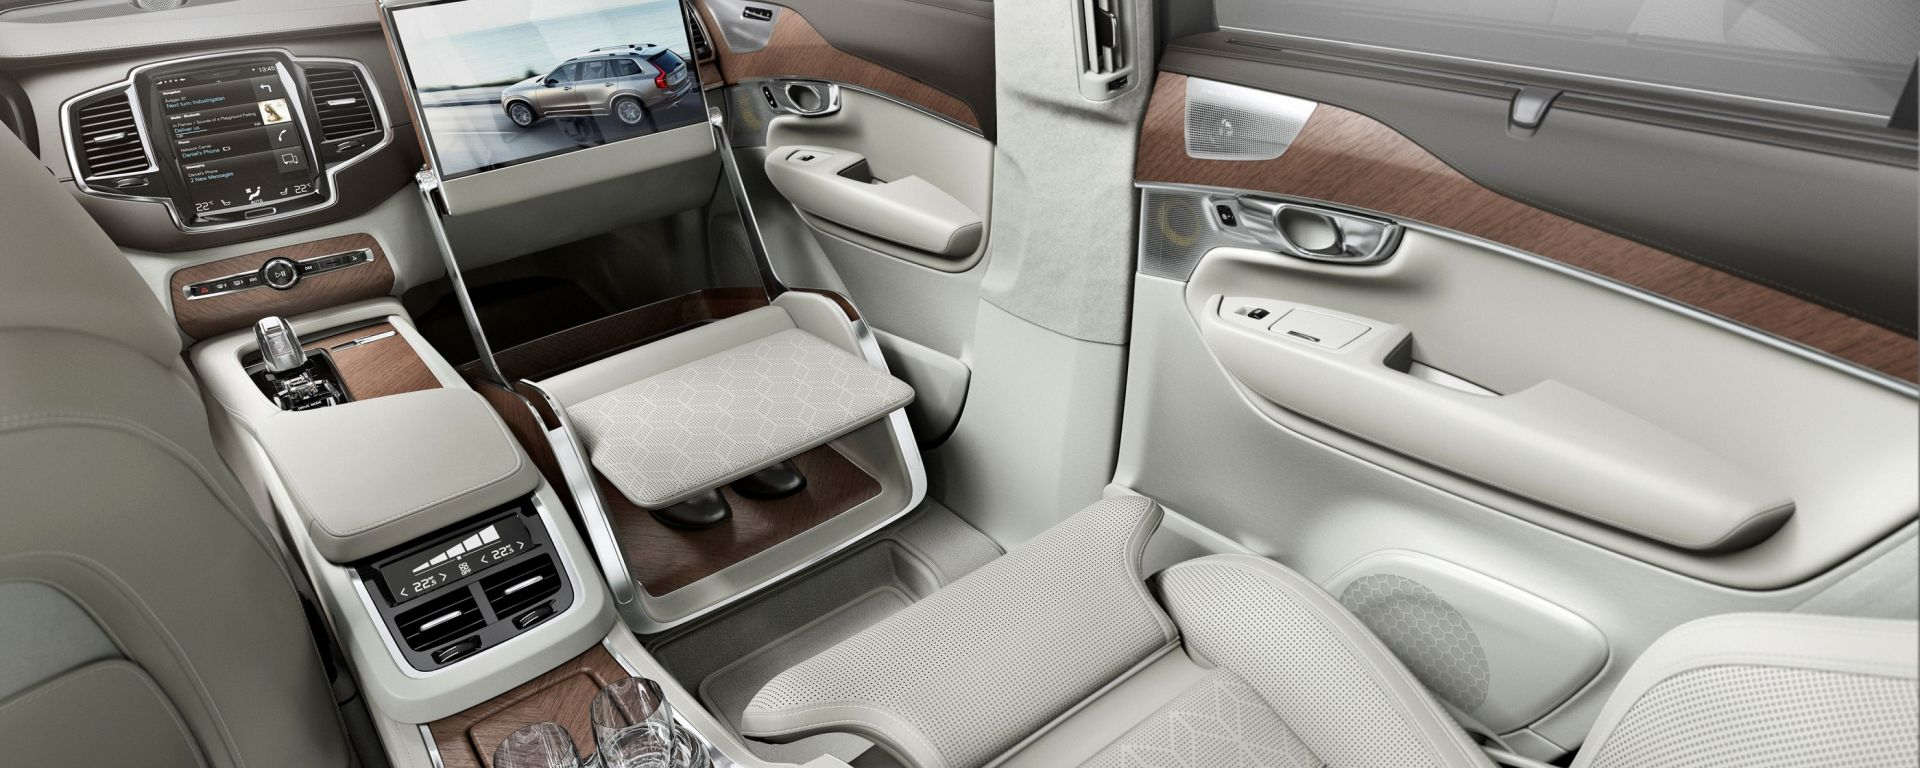 Volvo XC90 Lounge Console